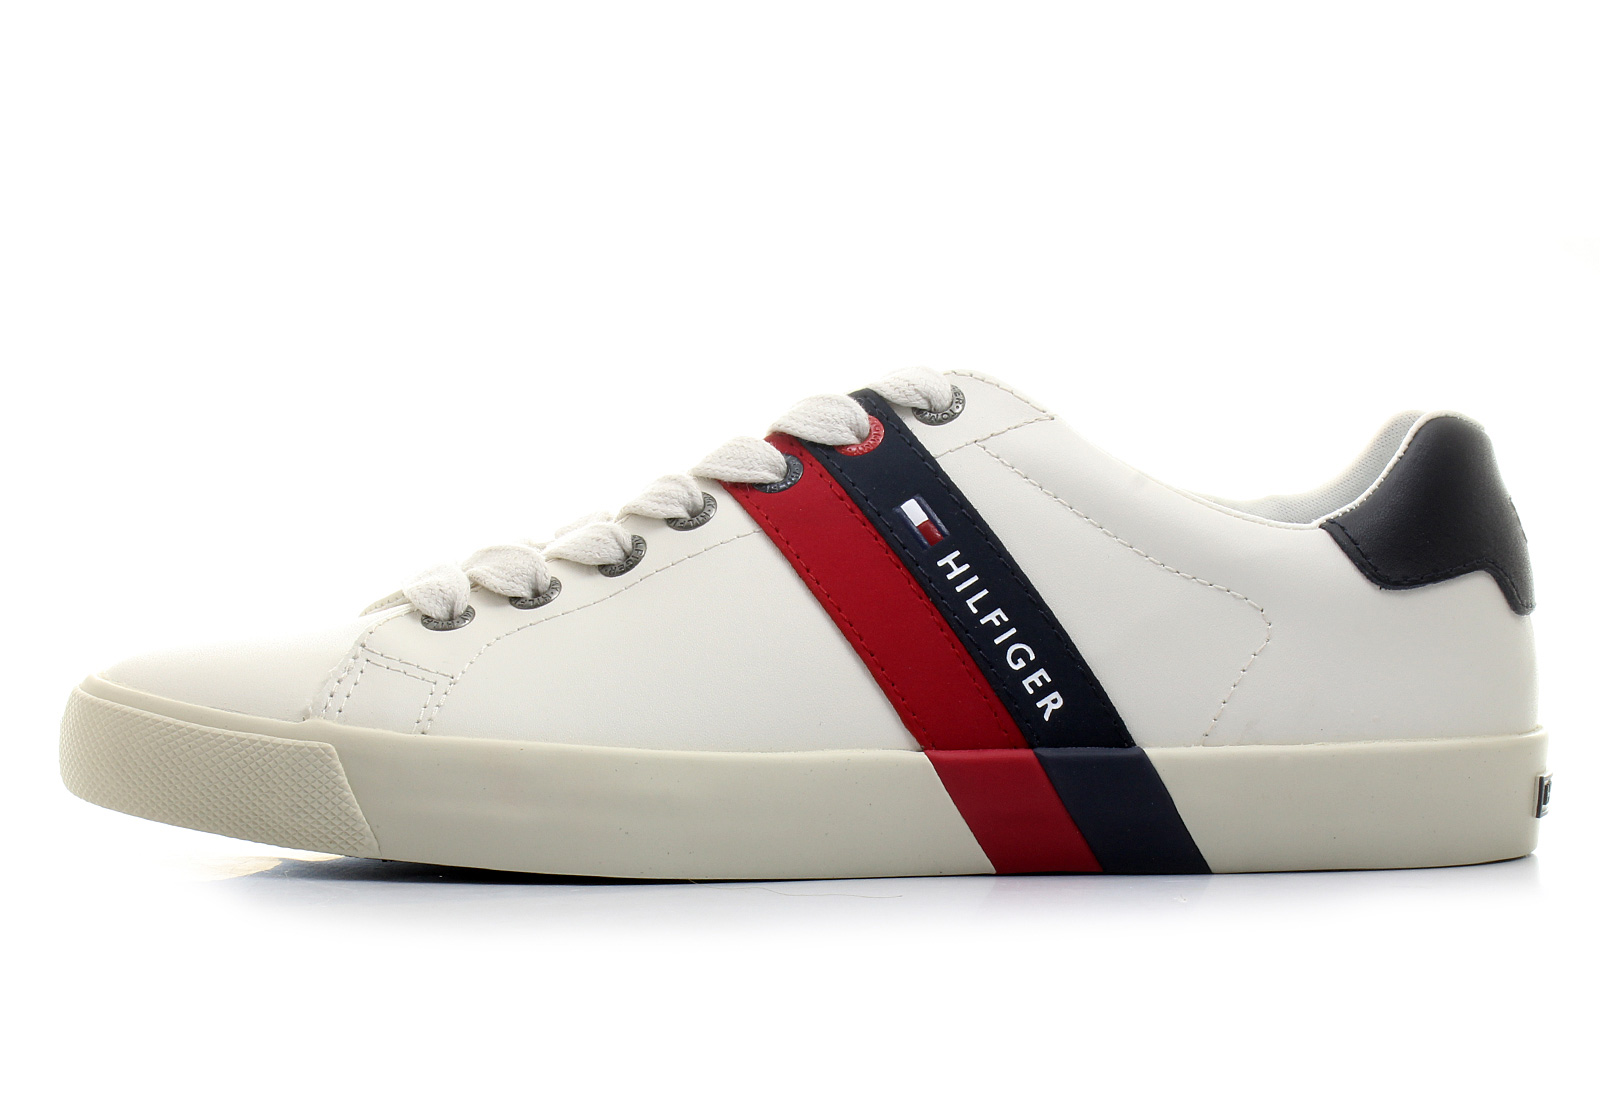 5331ee93 Tommy Hilfiger Shoes - Volley 5a - 15F-0557-156 - Online shop for ...